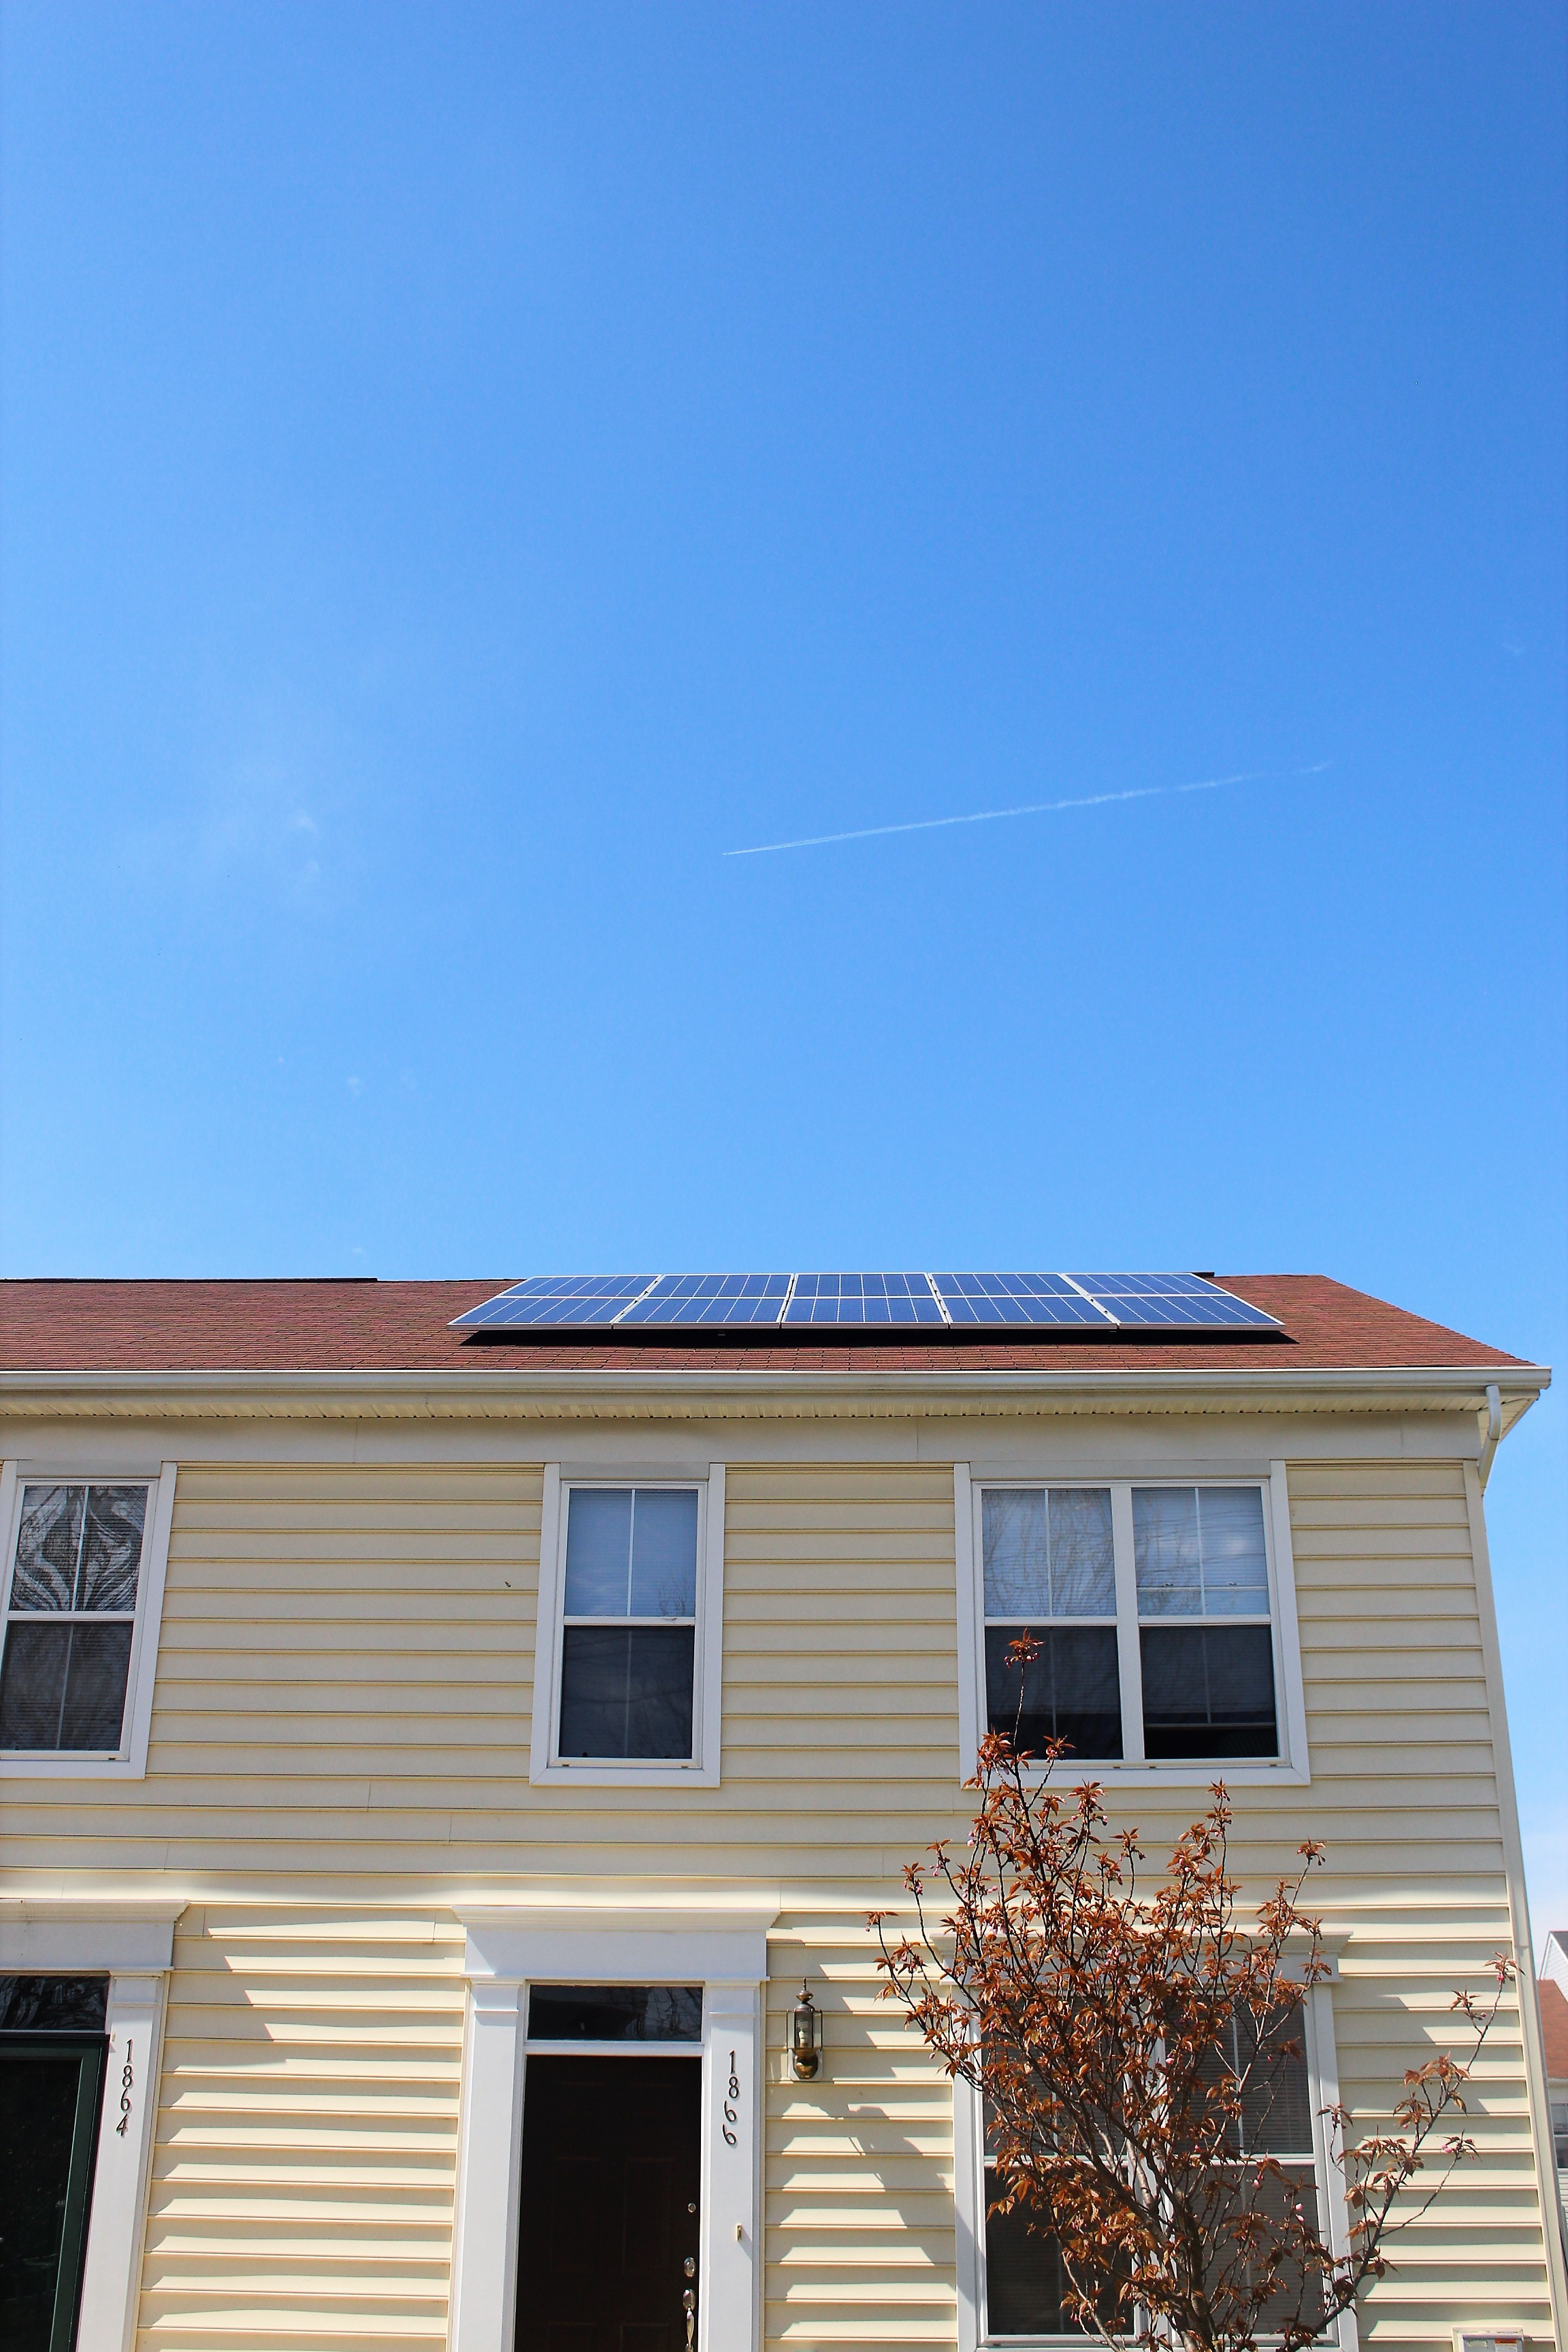 Solar panels on roof with asphalt shingles